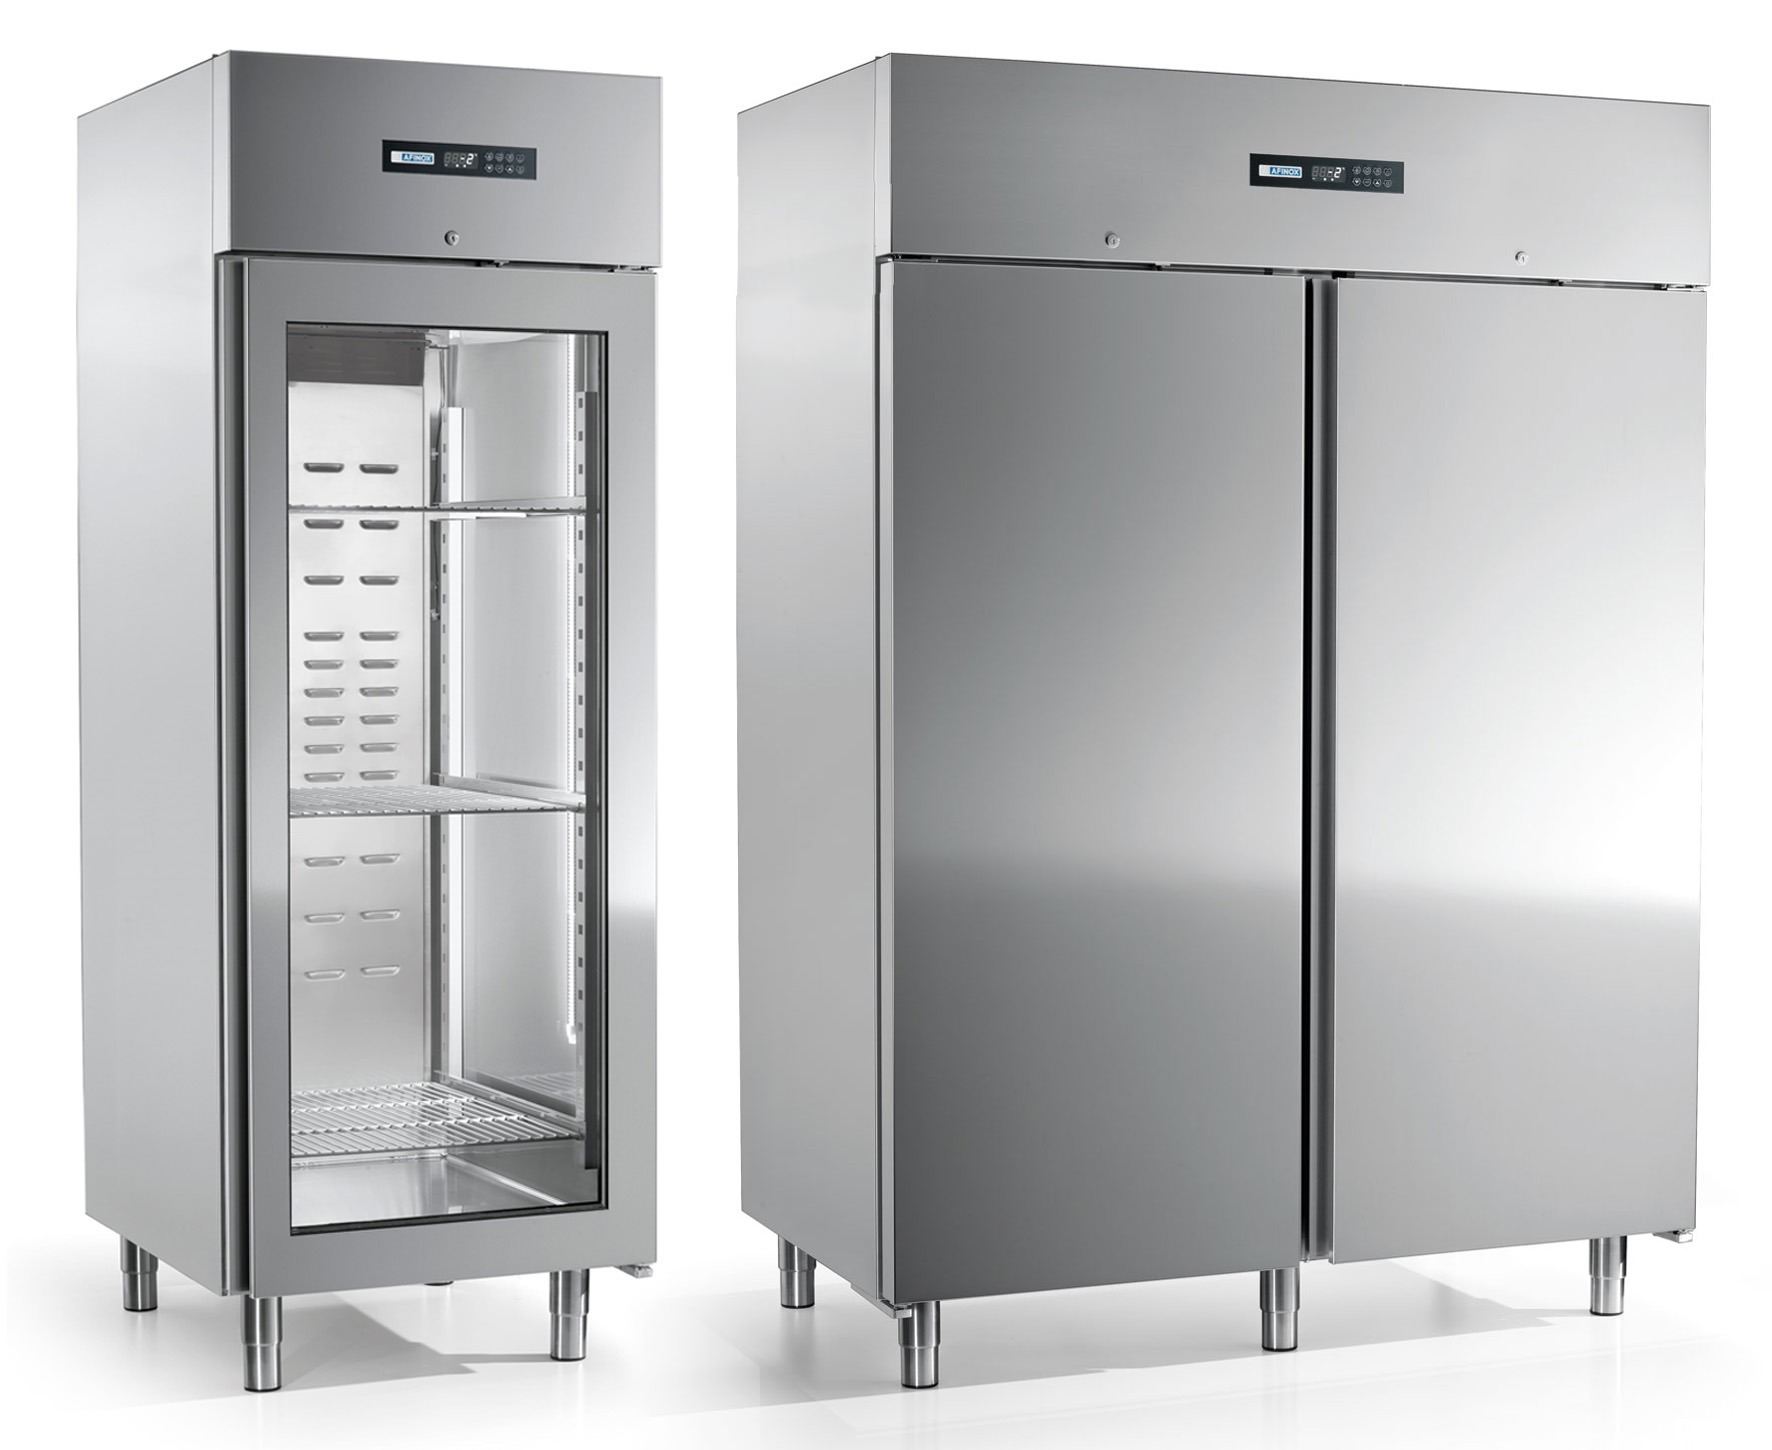 Armadio Ad Un&#39 Refrigerated Cabinets Storage Of Processed Food And Raw Materials